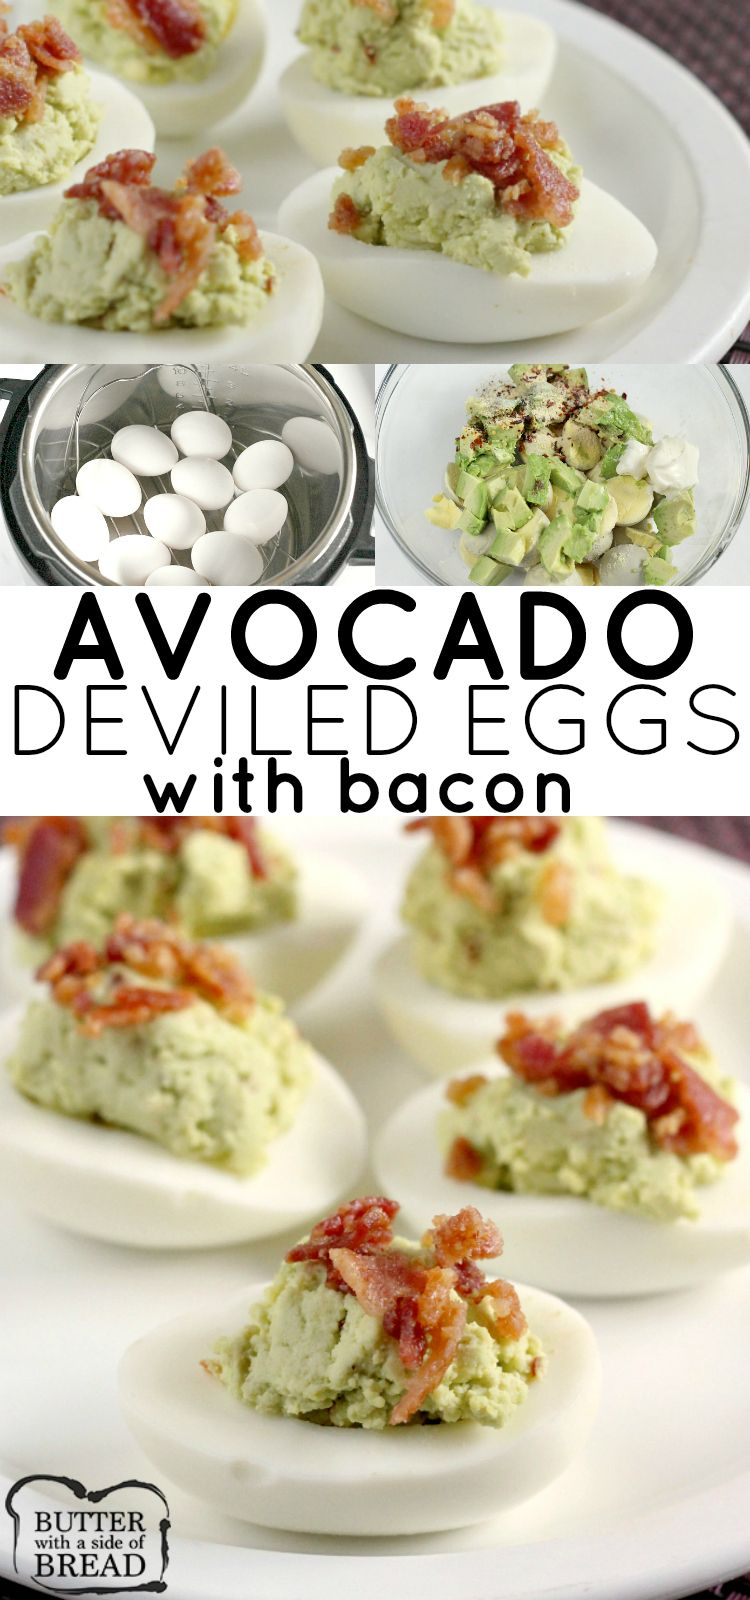 BACON AVOCADO DEVILED EGGS - Butter with a Side of Bread